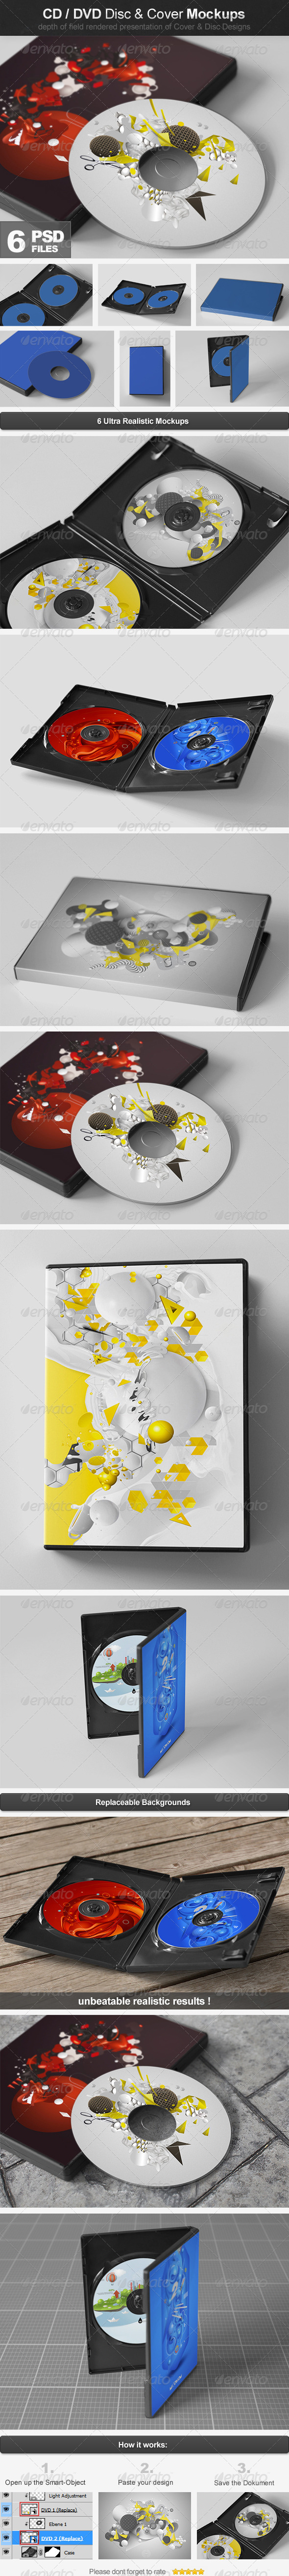 CD/DVD Disc & Cover Mockups - Discs Packaging